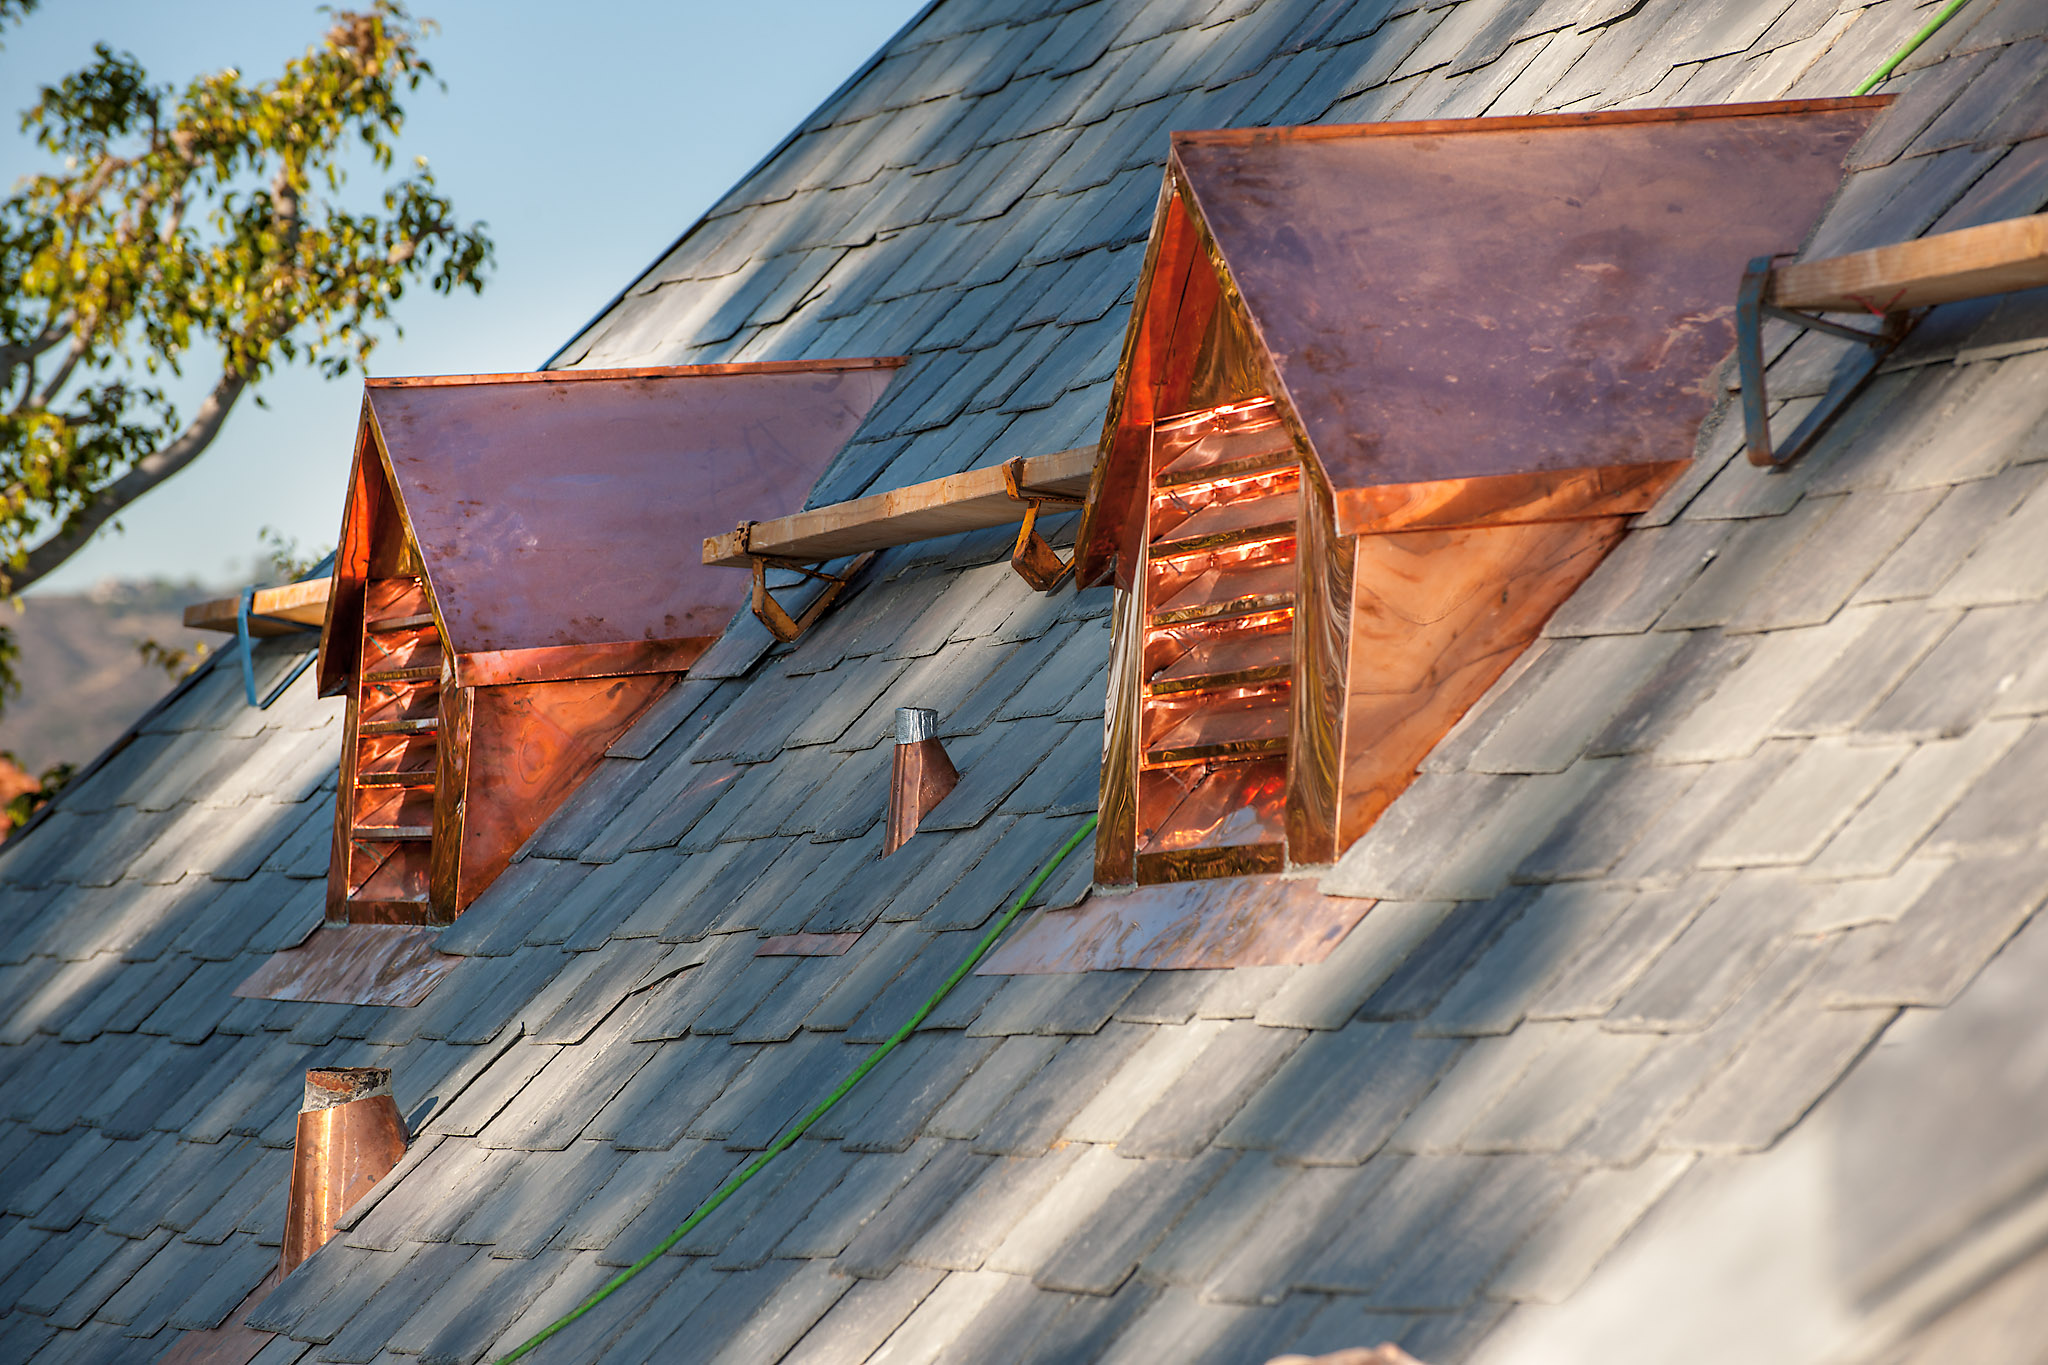 Slate roof with custom copper dormers, Hancock Park, Los Angeles, California